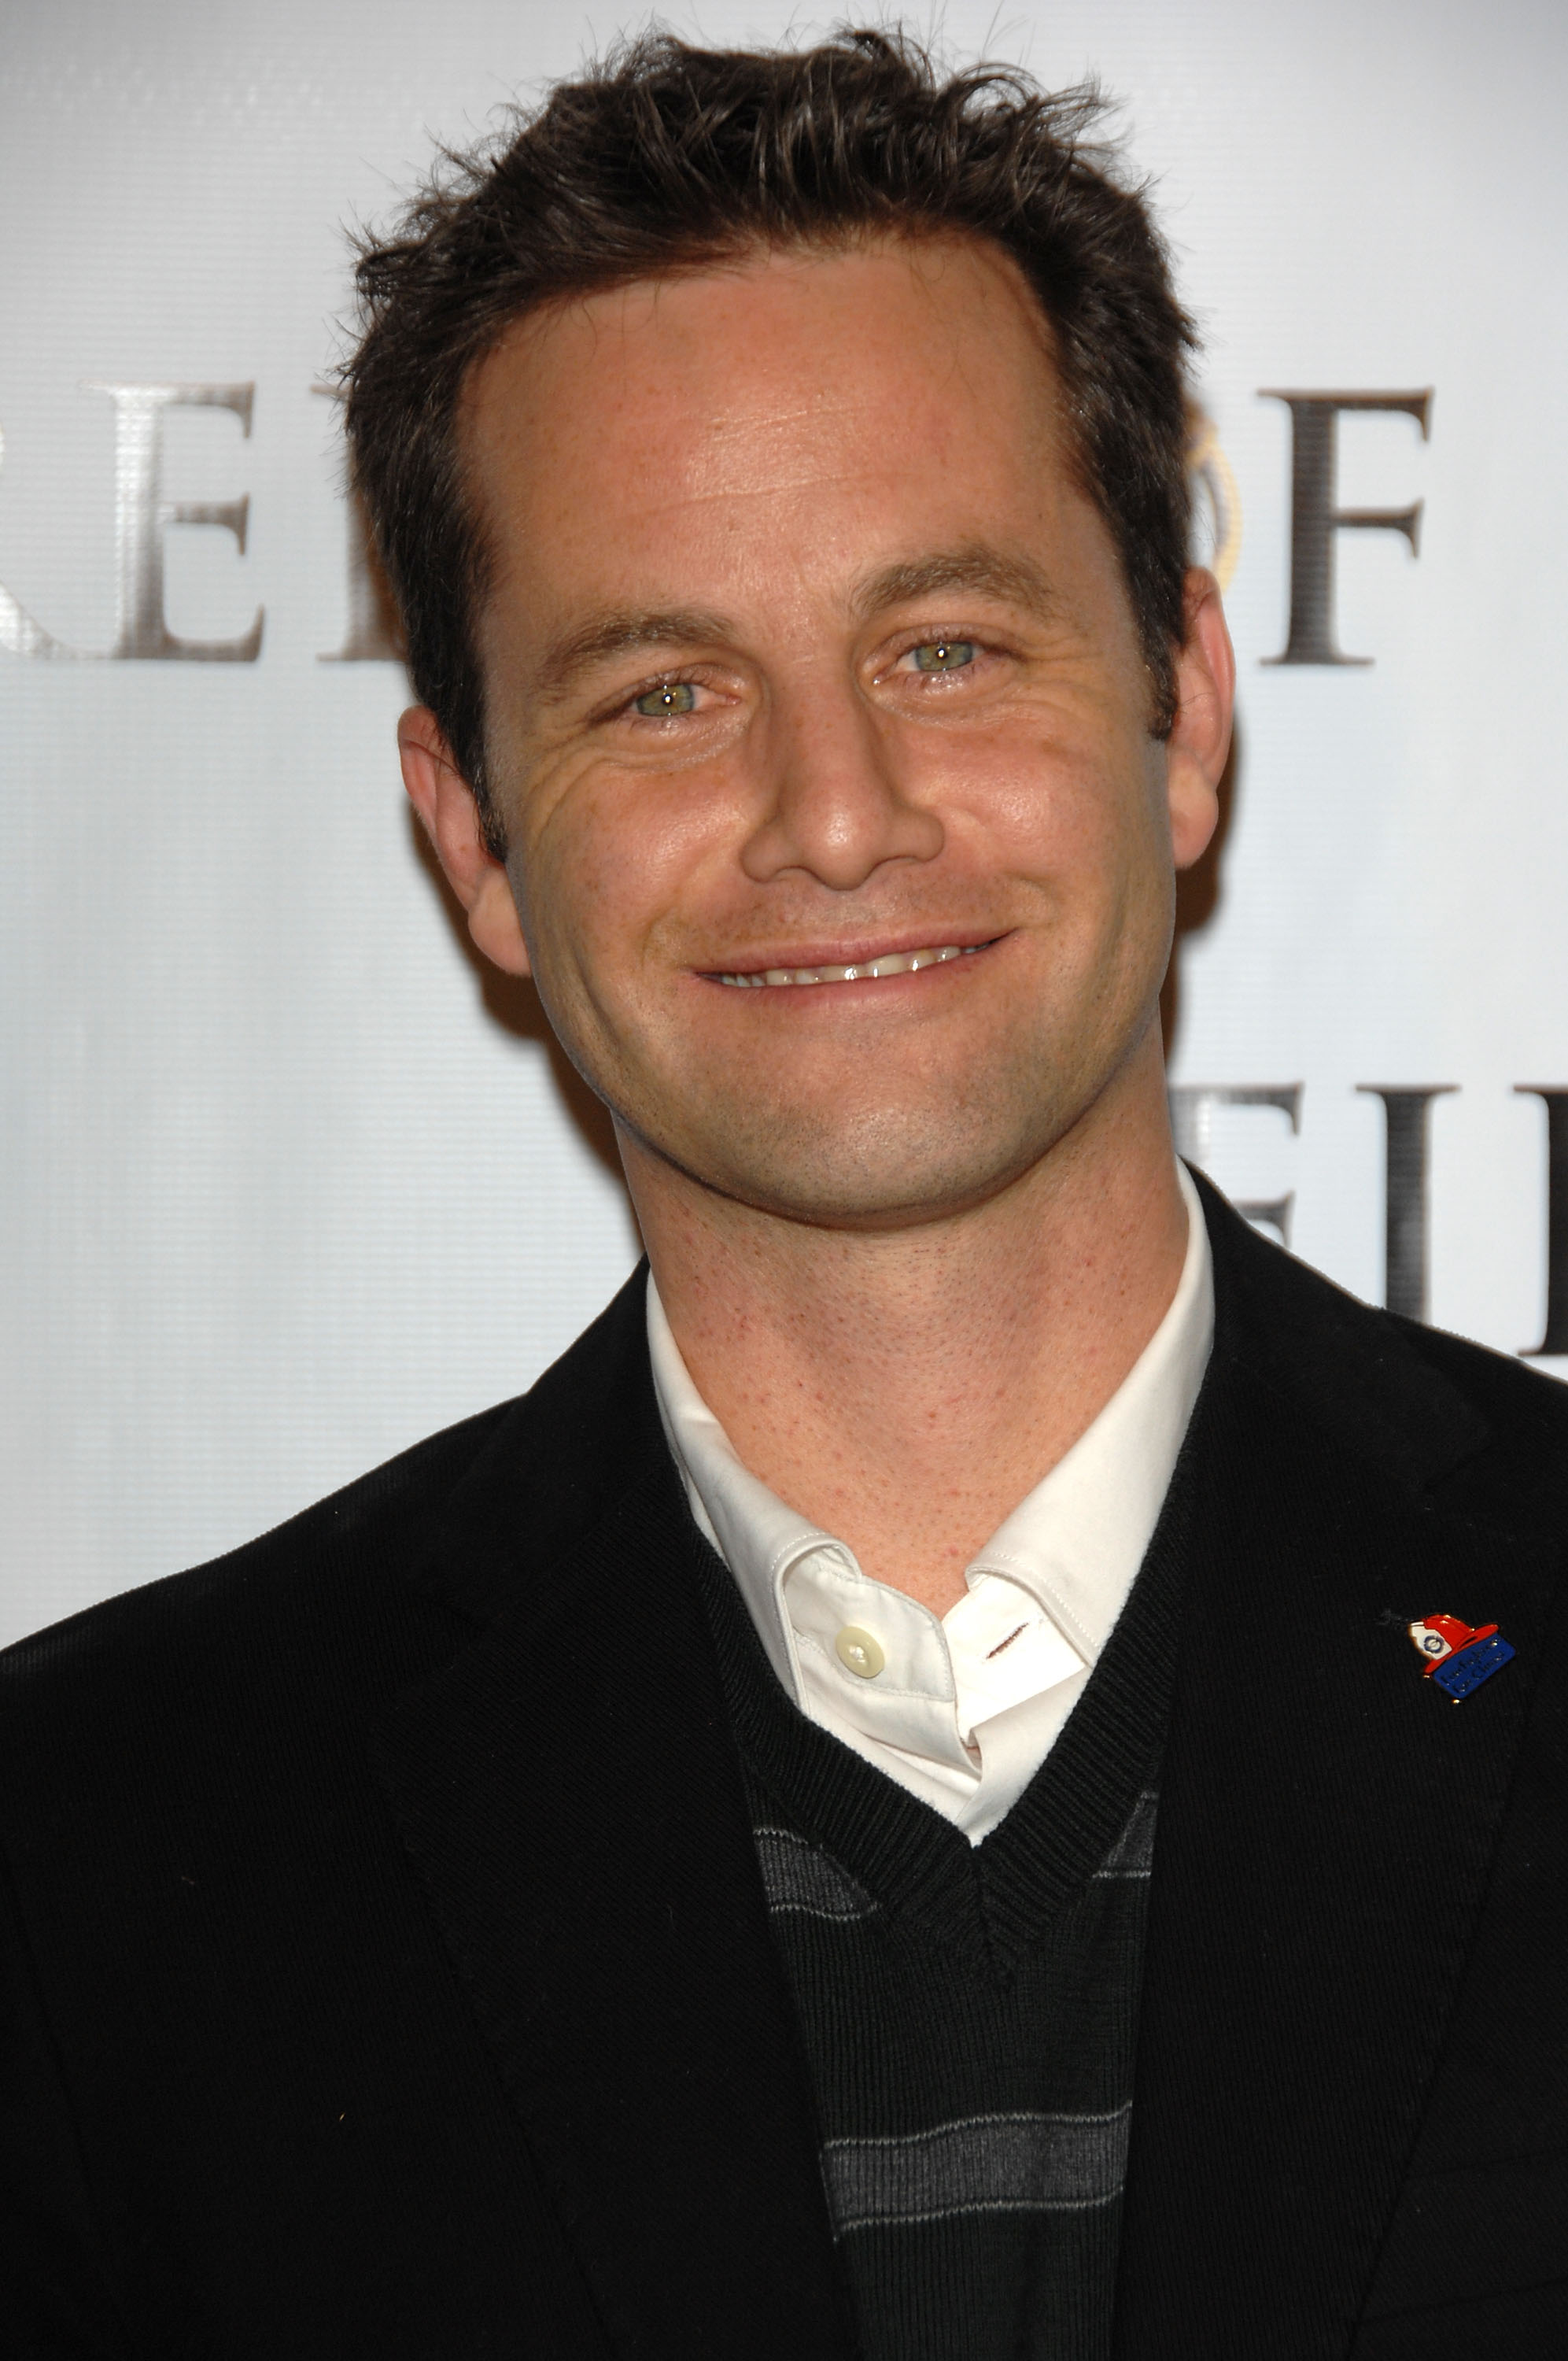 Kirk Cameron\'s \'Saving Christmas\' Movie Is Bad, But Just How Bad Is It?